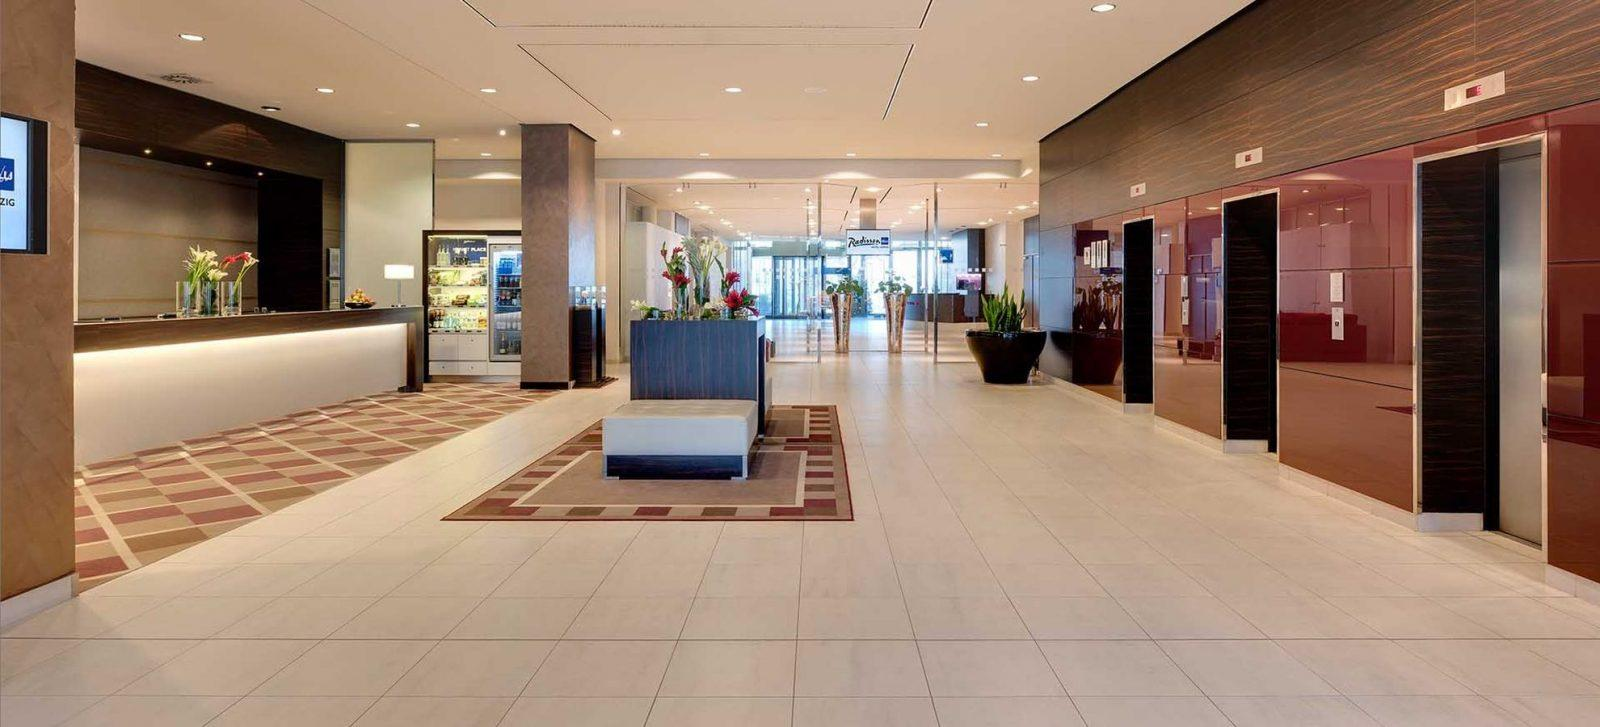 Radisson-Blu-Leipzig-Lobby-Rezeption